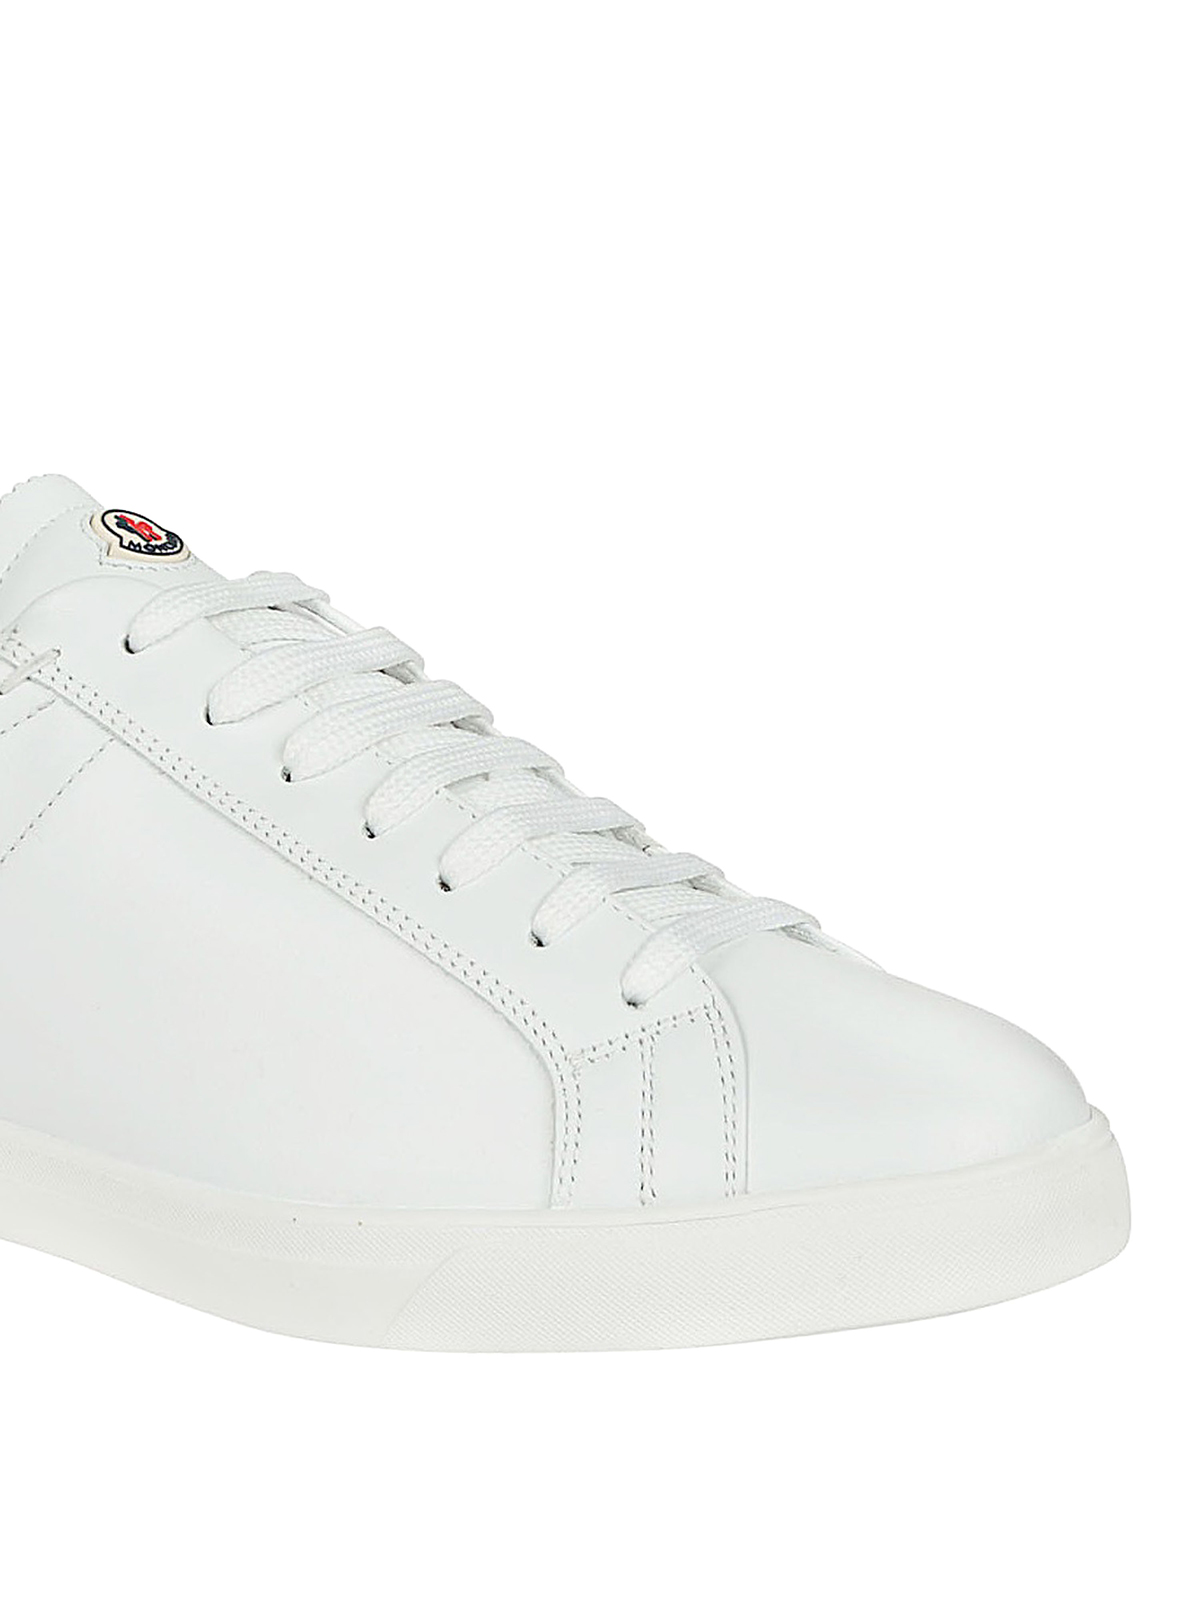 6634c316a Moncler - White leather sneakers - trainers - 1017400019MT001 ...